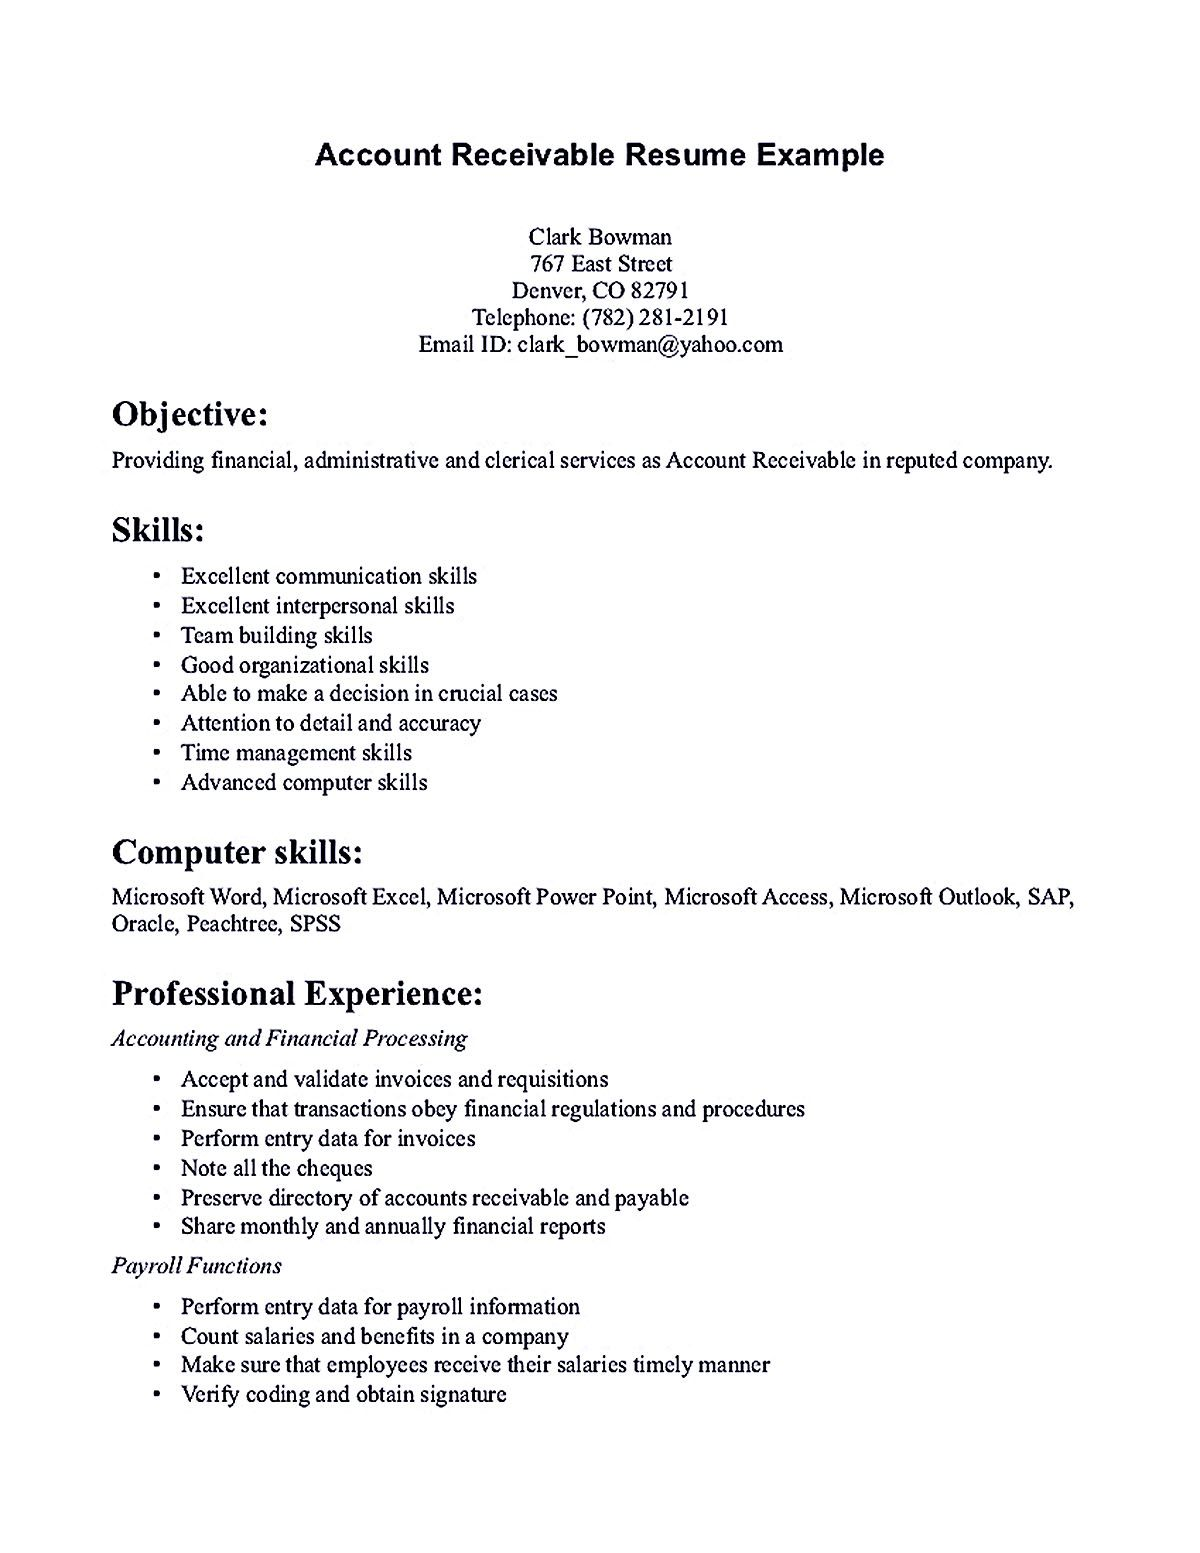 Accounts Payable And Receivable Resume Stunning Account Receivable Resume Shows Both Technical And Interpersonal .